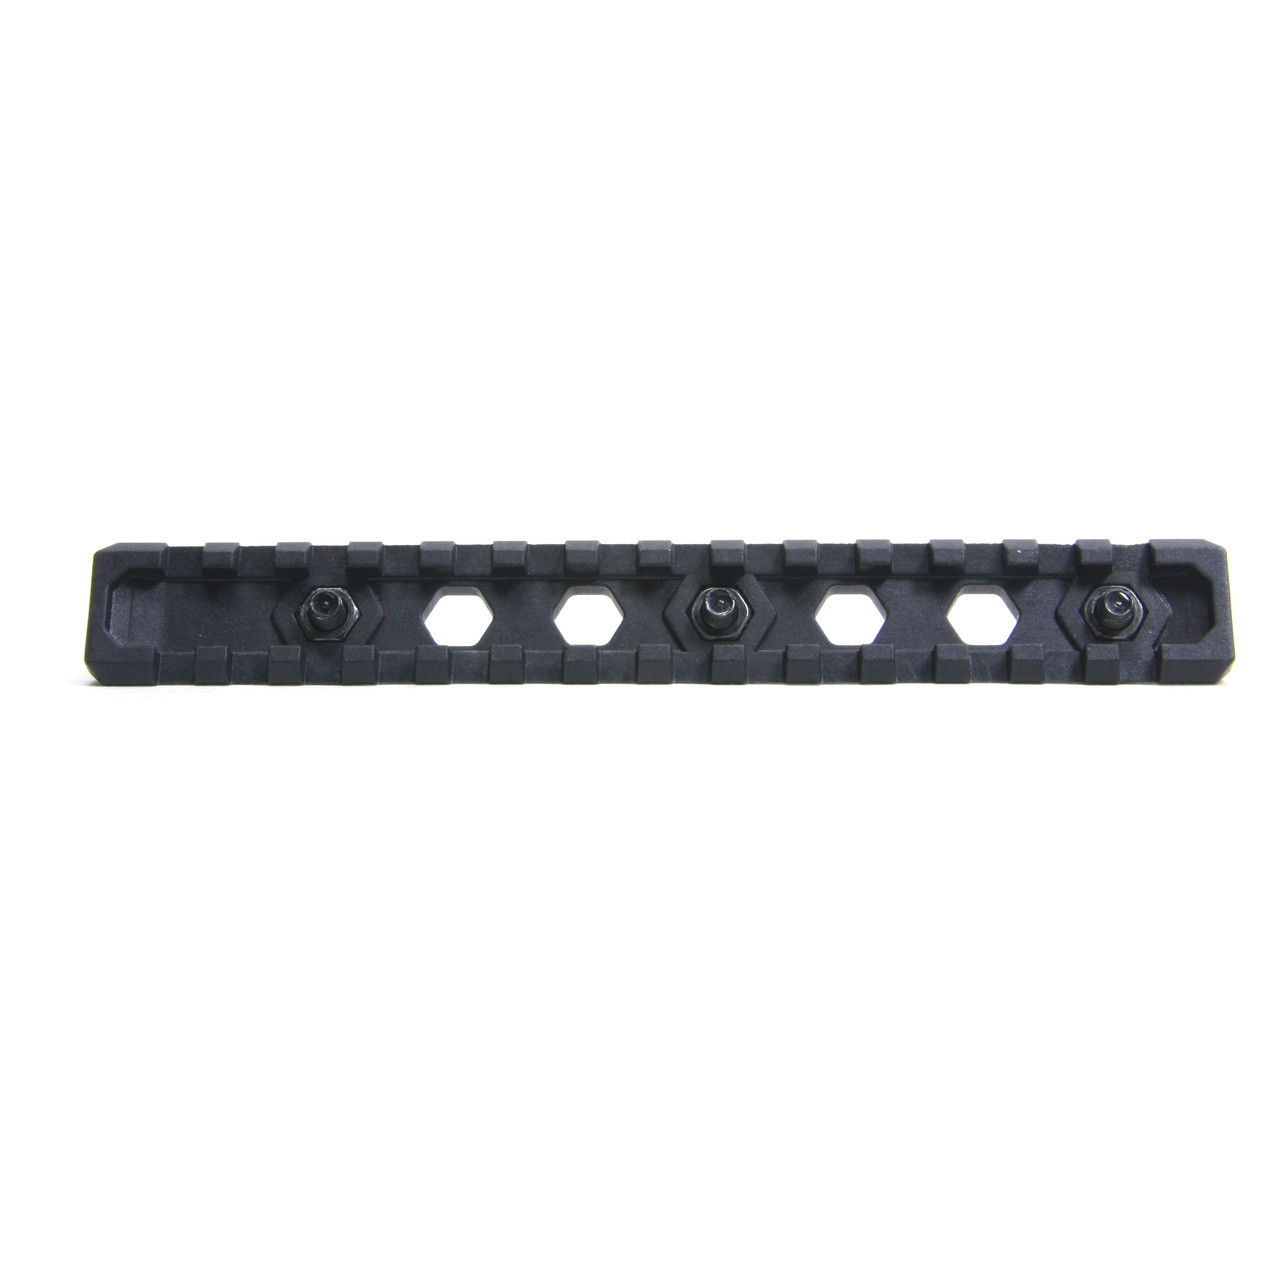 AR-15® / M16 Rifle Hand Guard Rail - Black Polymer